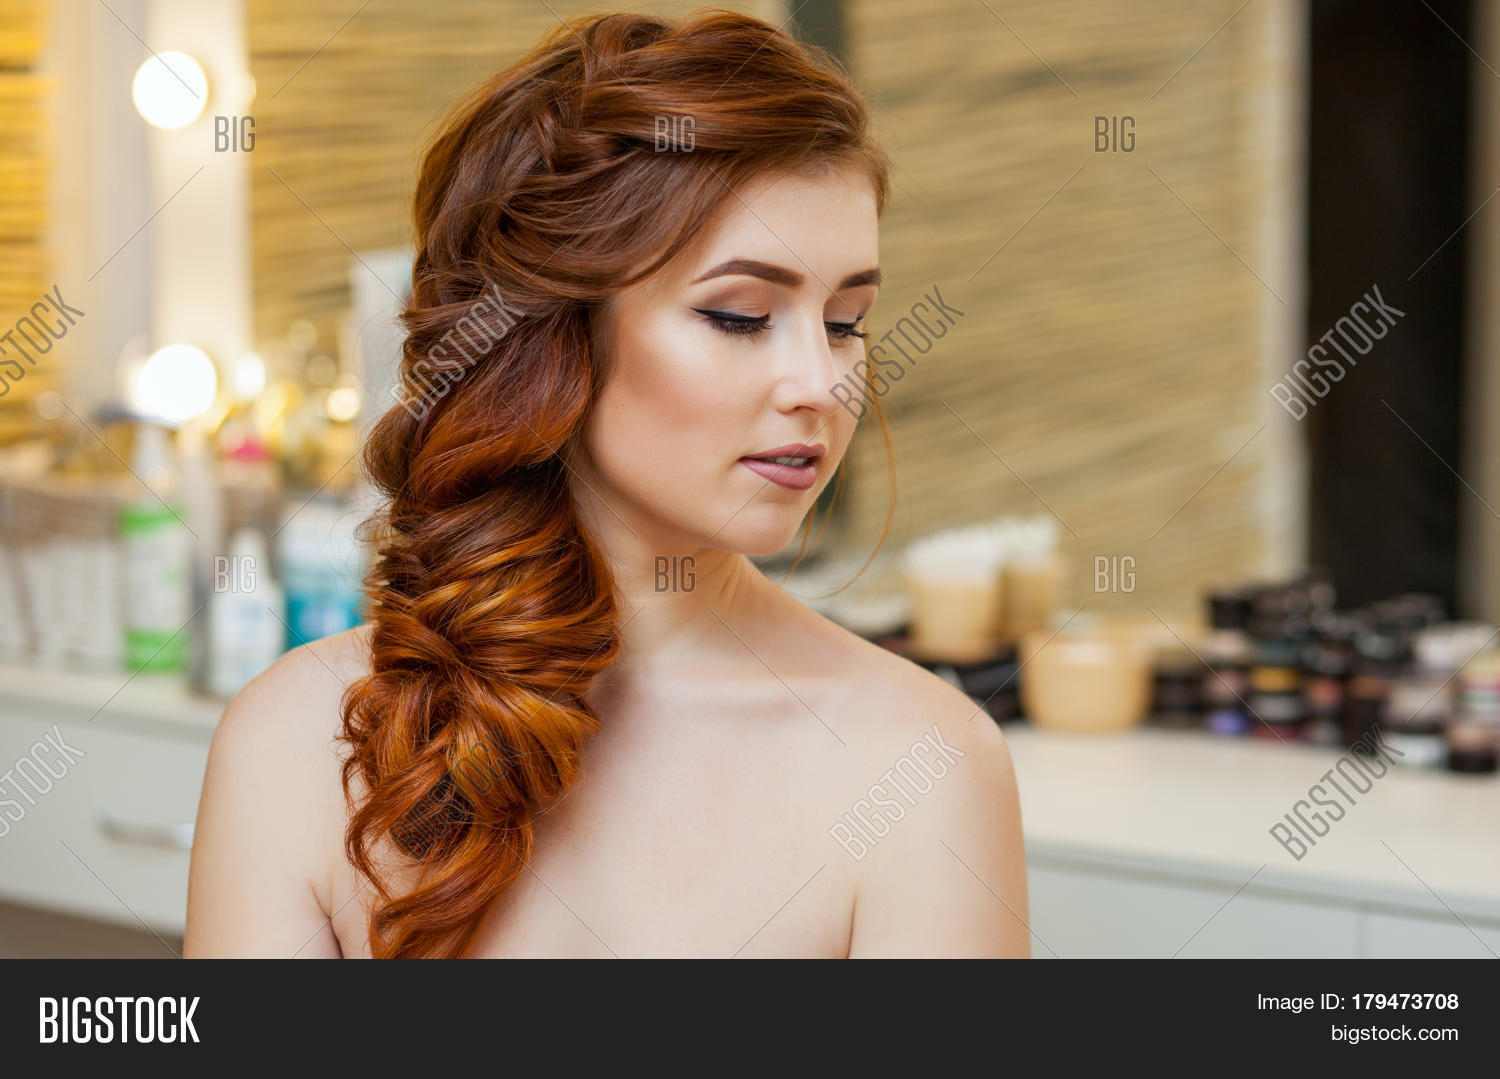 Beautiful Girl Long Image Photo Free Trial Bigstock